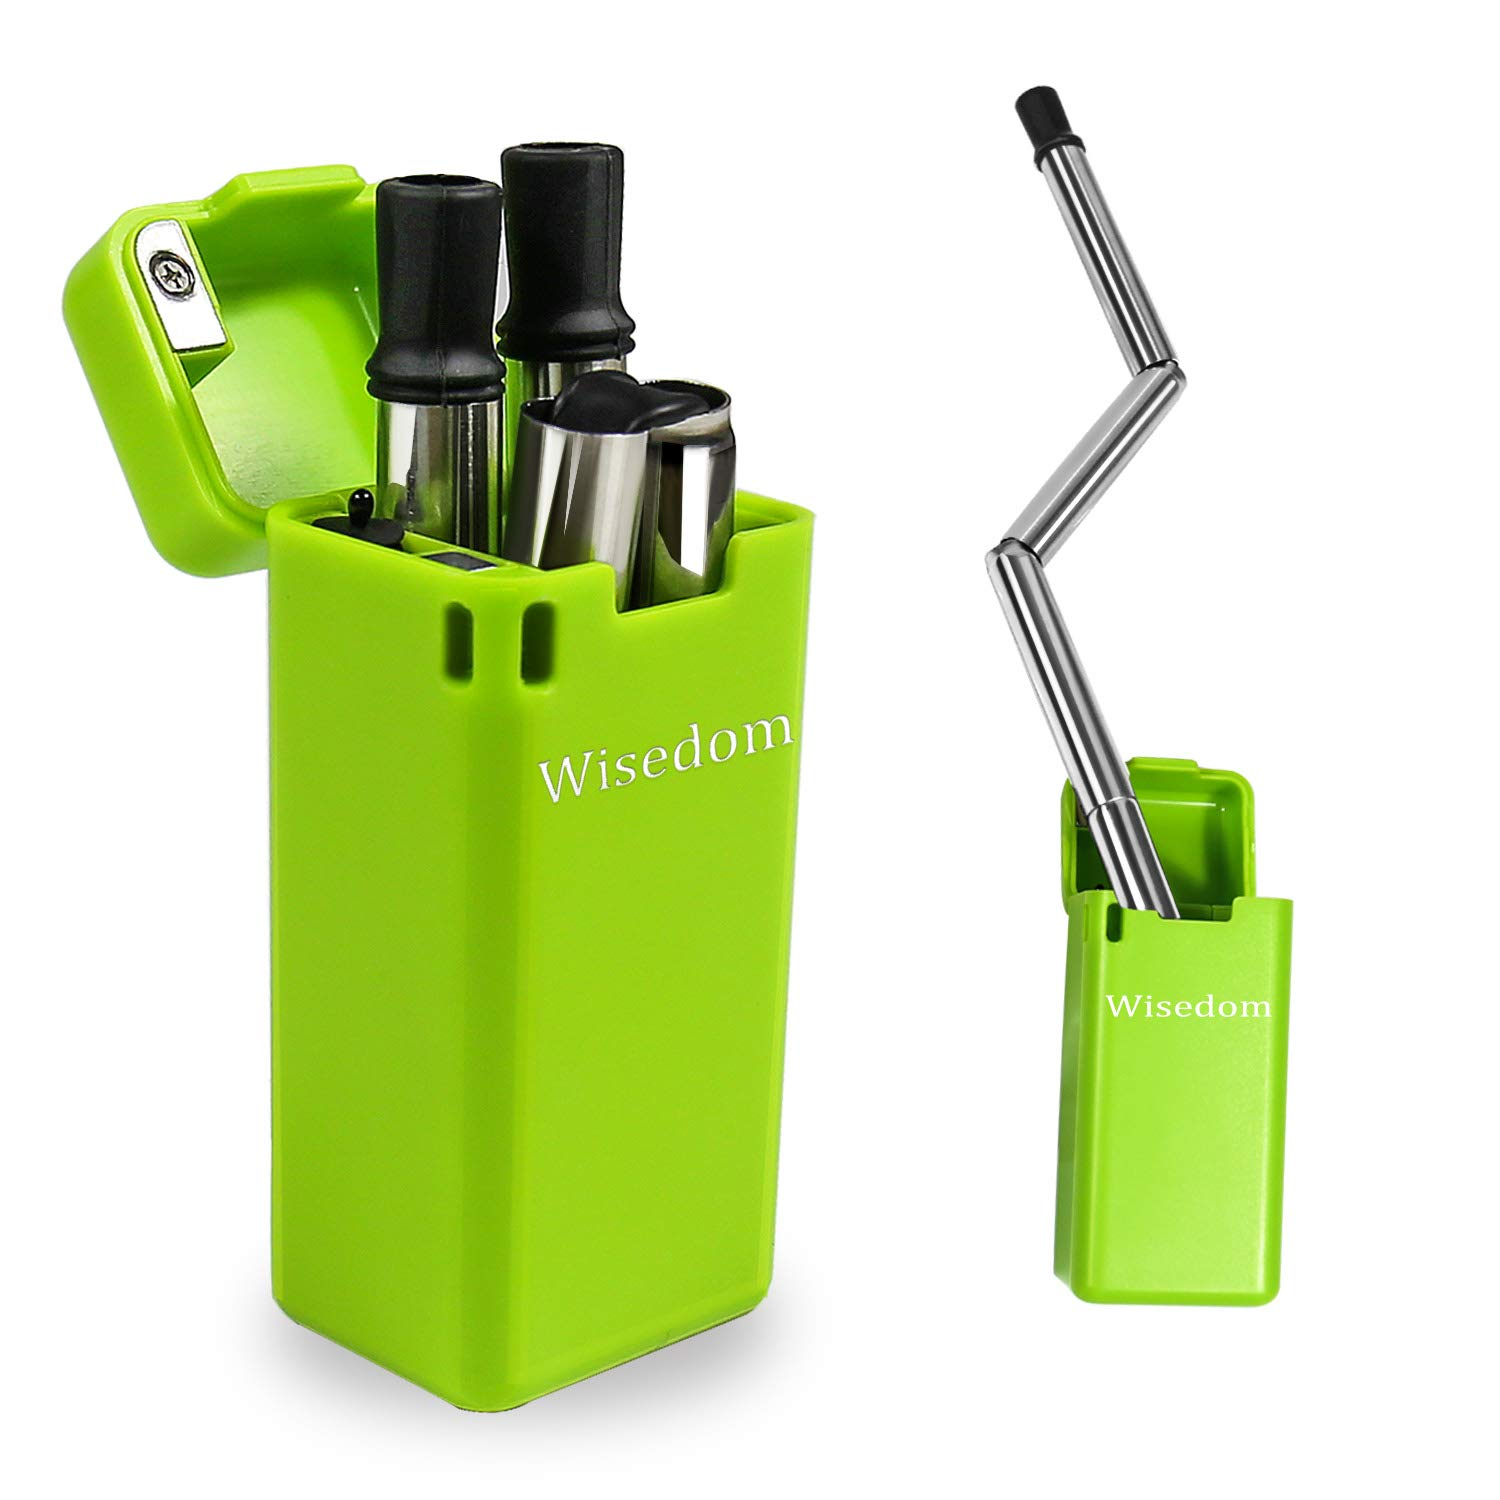 Collapsible Straw Wisedom,BPA Free Foldable Reusable Stainless Steel Drinking Straw Portable with Case and Easy Cleaning Tool.